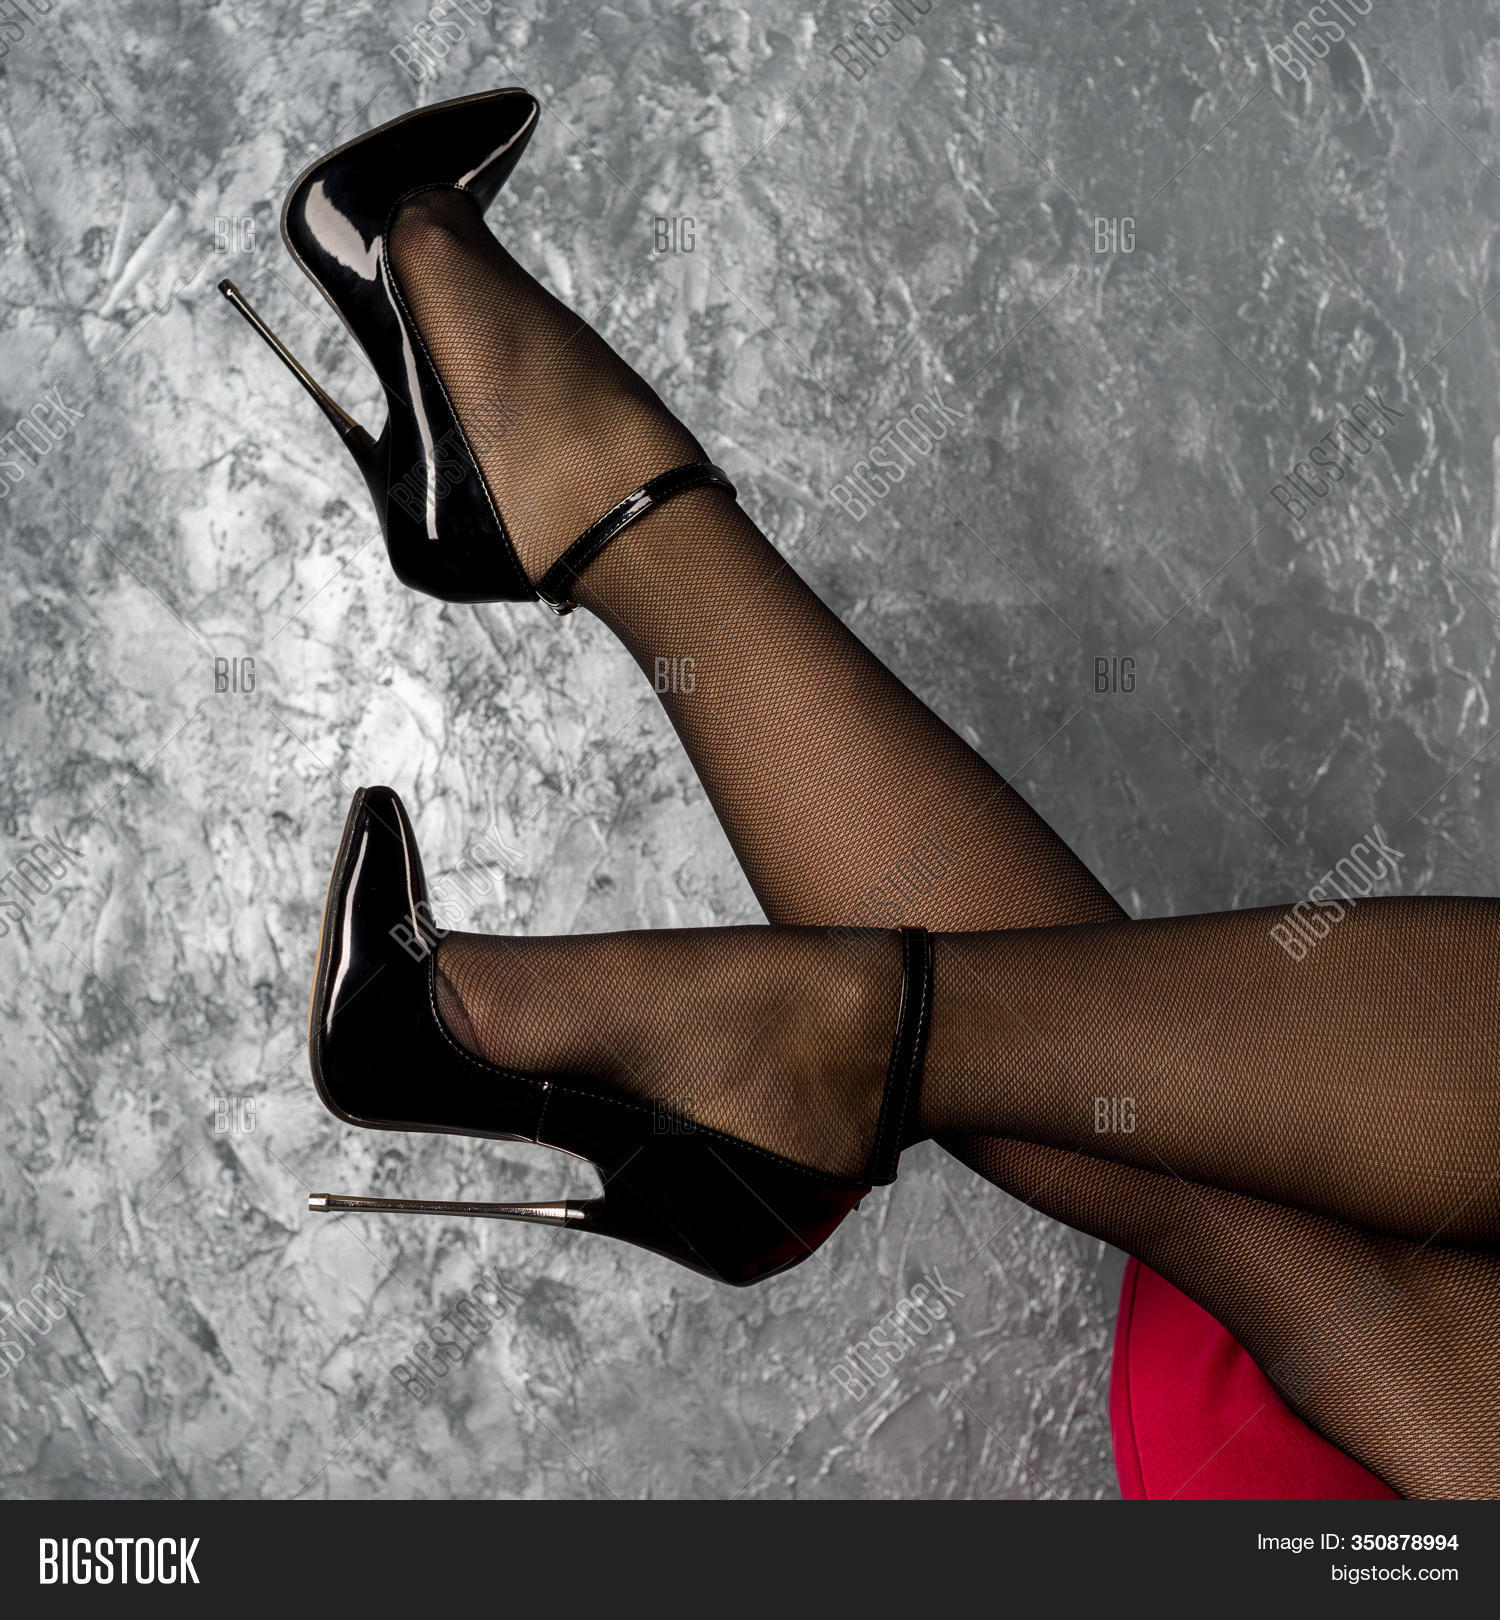 Woman Legs Black Image Photo Free Trial Bigstock